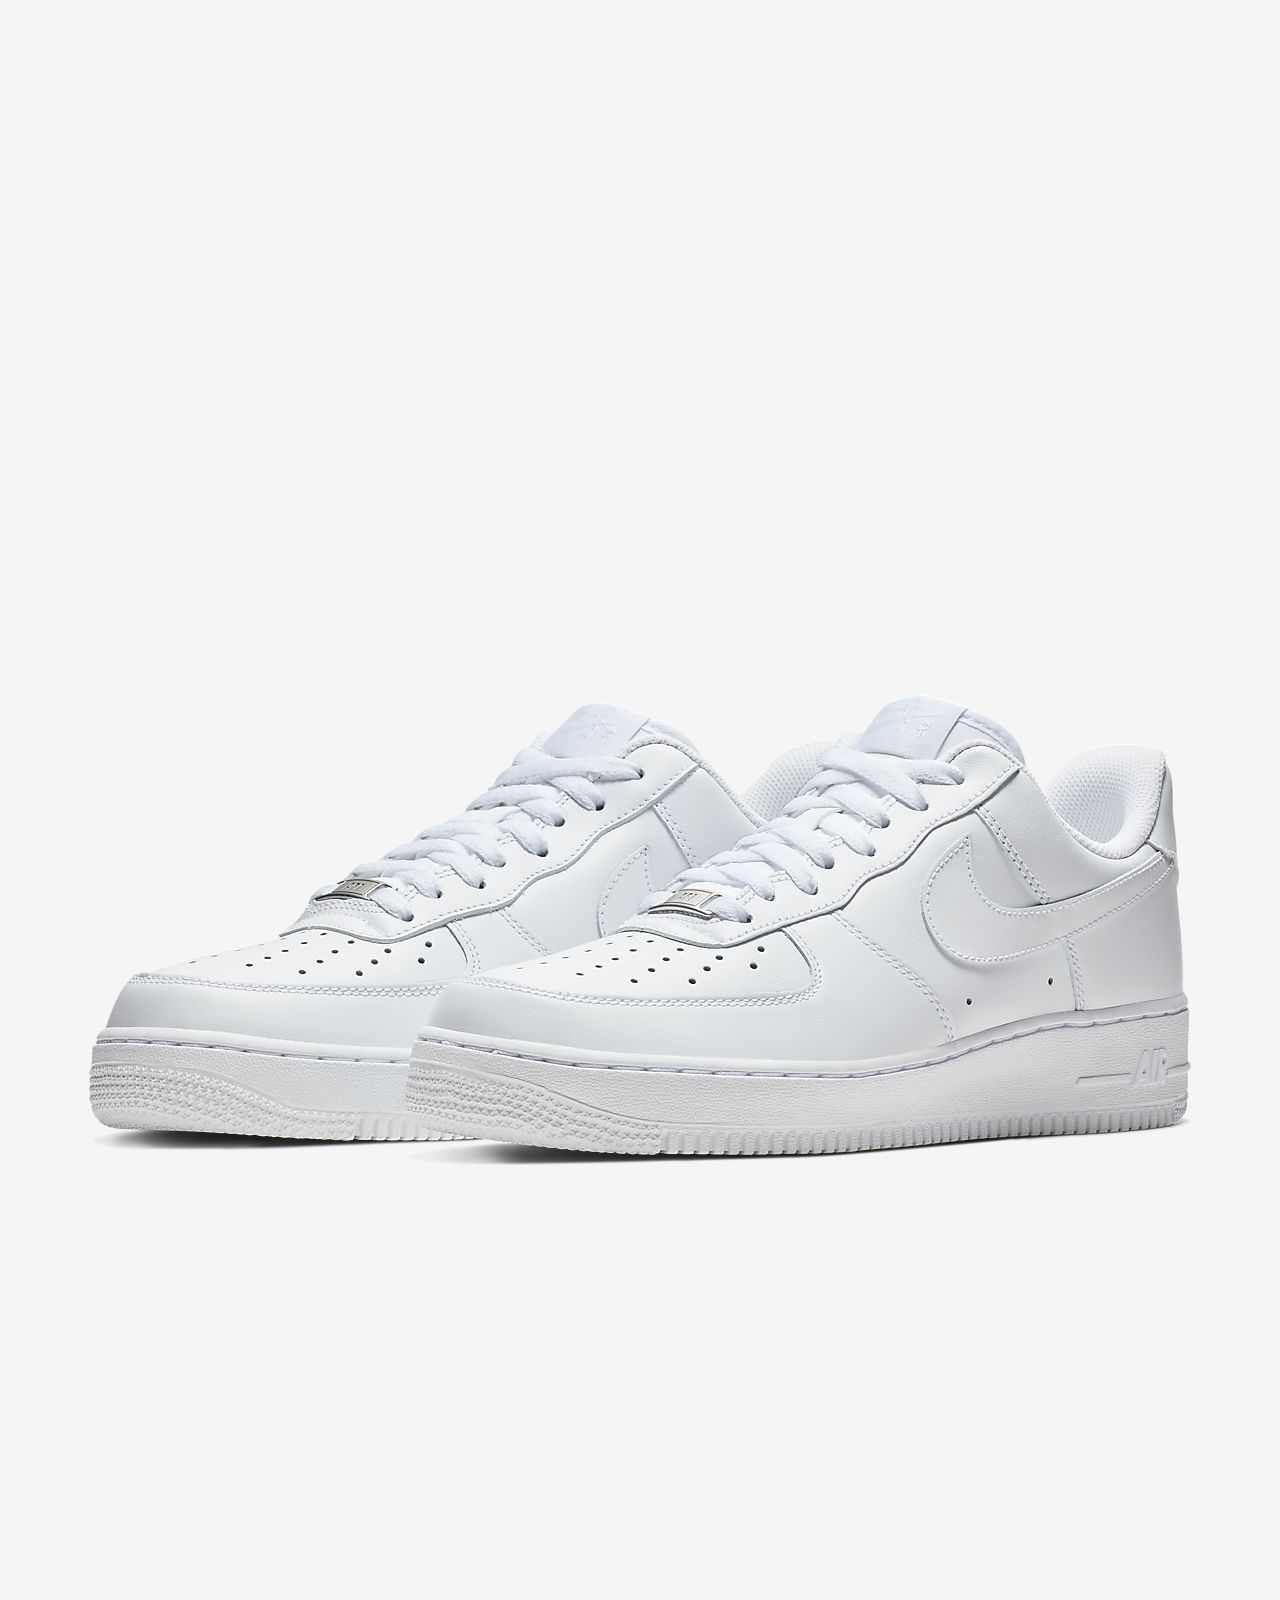 new concept f4f15 bfba6 Low Resolution Nike Air Force 1  07 Damenschuh Nike Air Force 1  07  Damenschuh